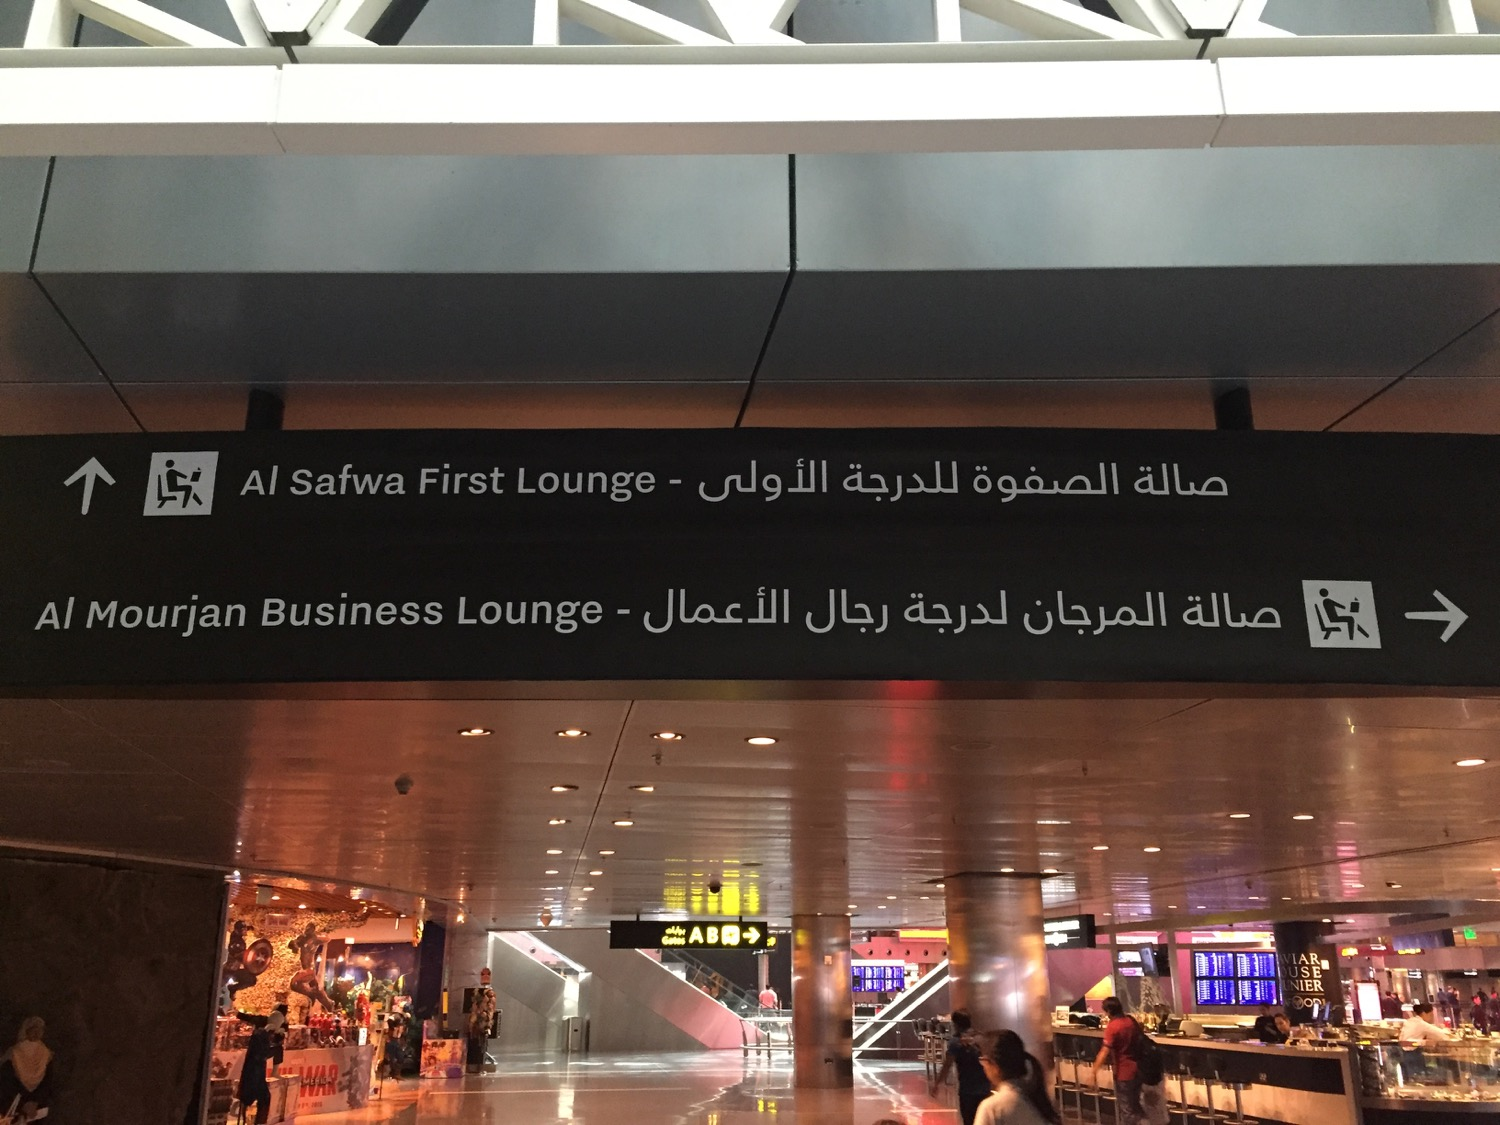 """Review: Qatar Airways First Class """"Al Safwa"""" Lounge - Live"""